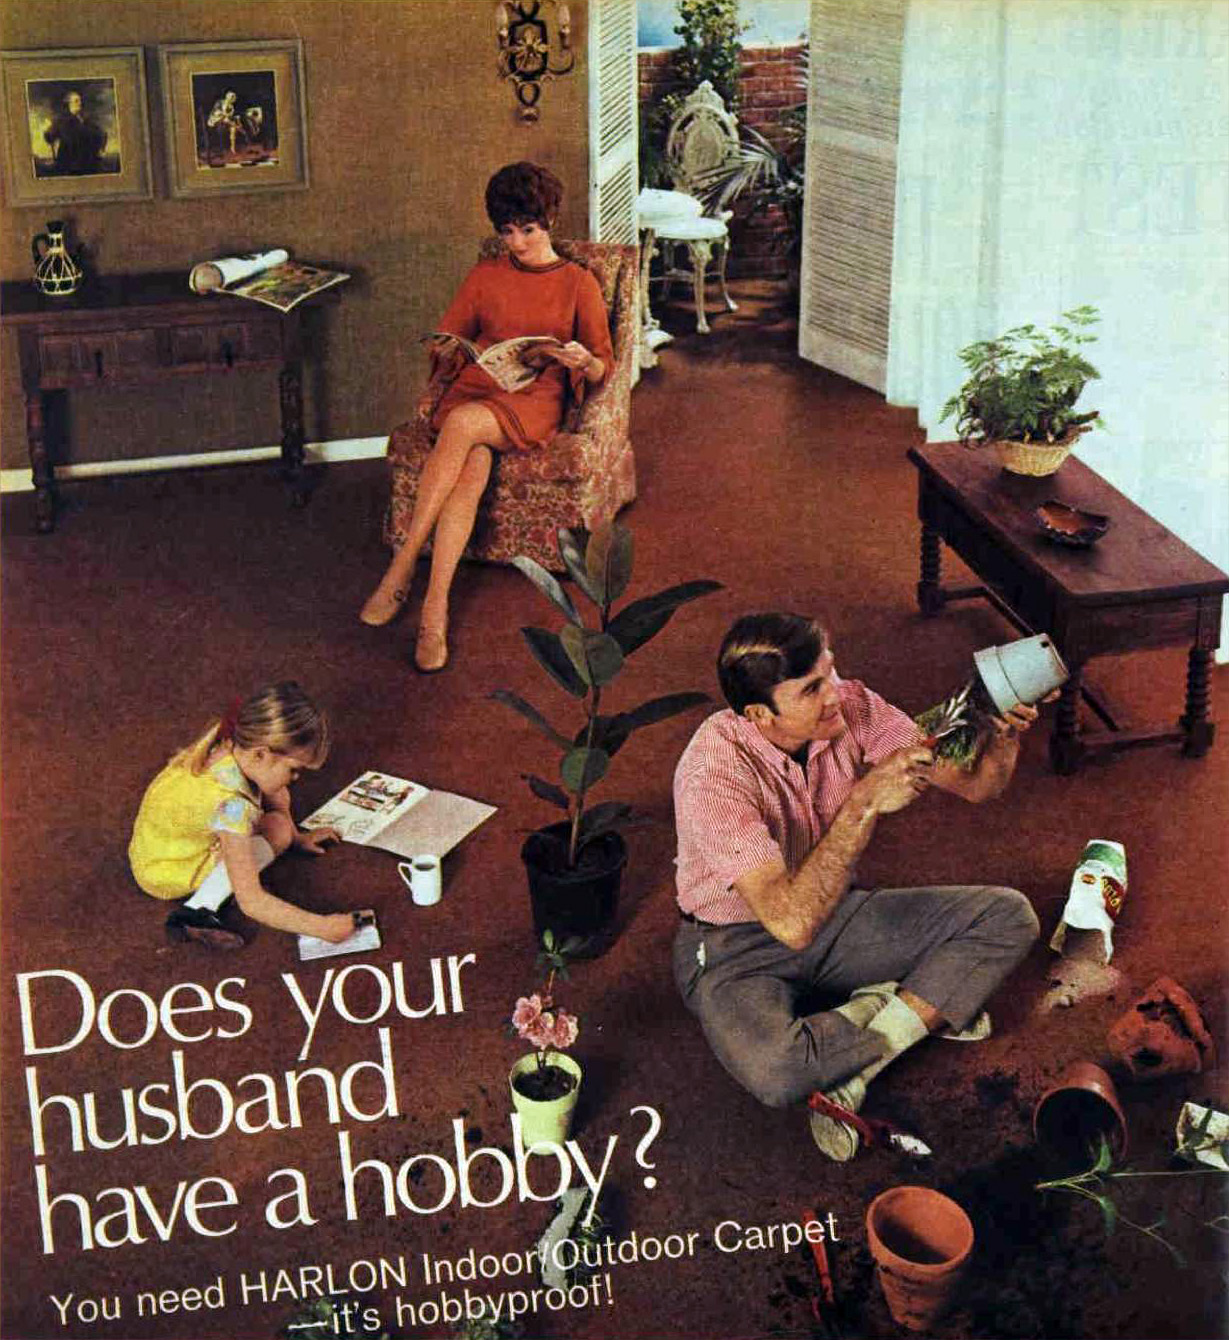 1968 carpet advert